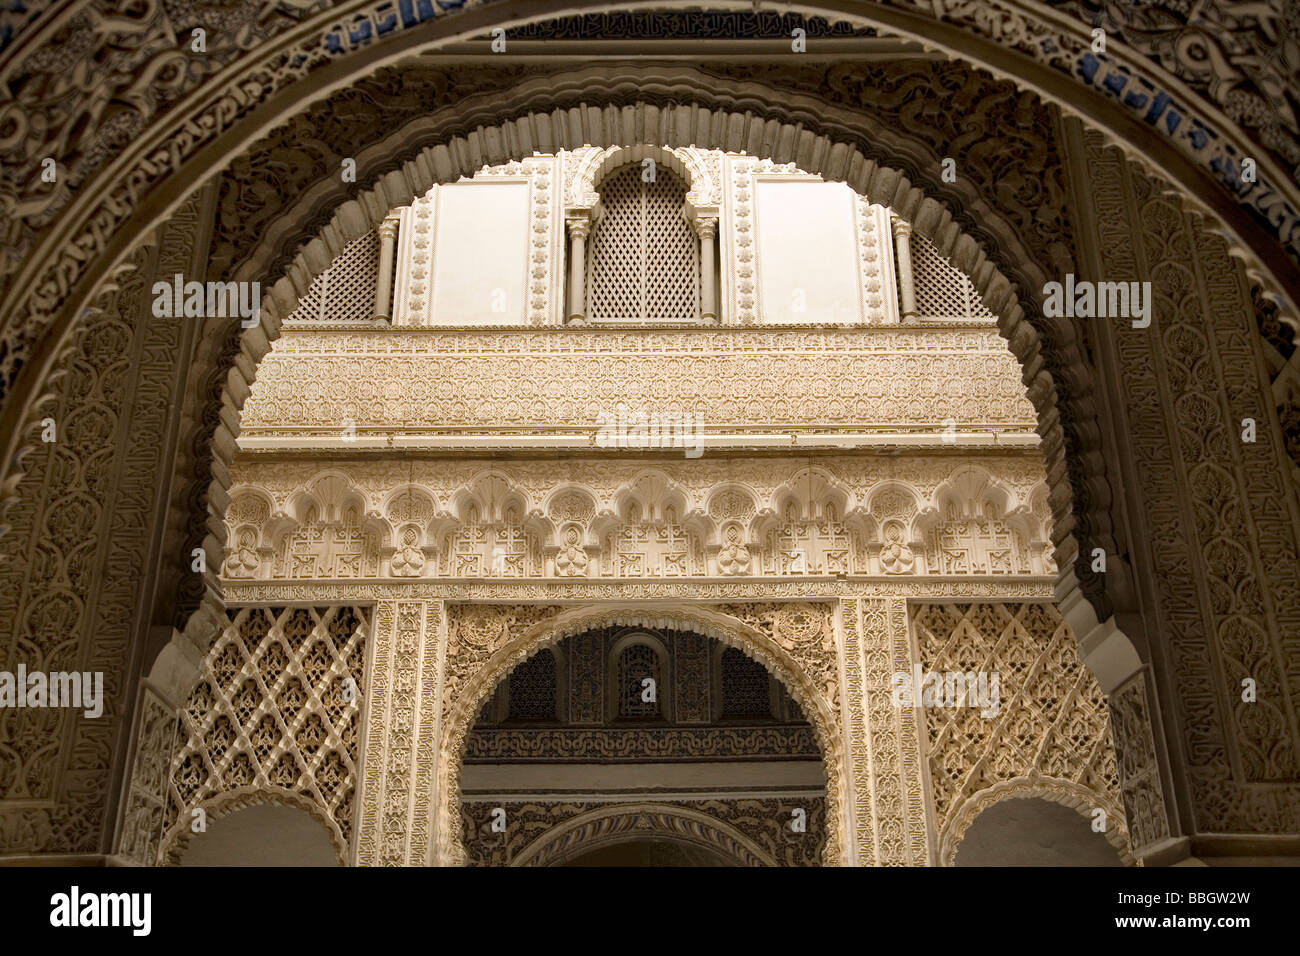 Courtyard of Las Muñecas in the Mudejar Palace of Los Reales Alcazares Seville Andalusia Spain Stock Photo